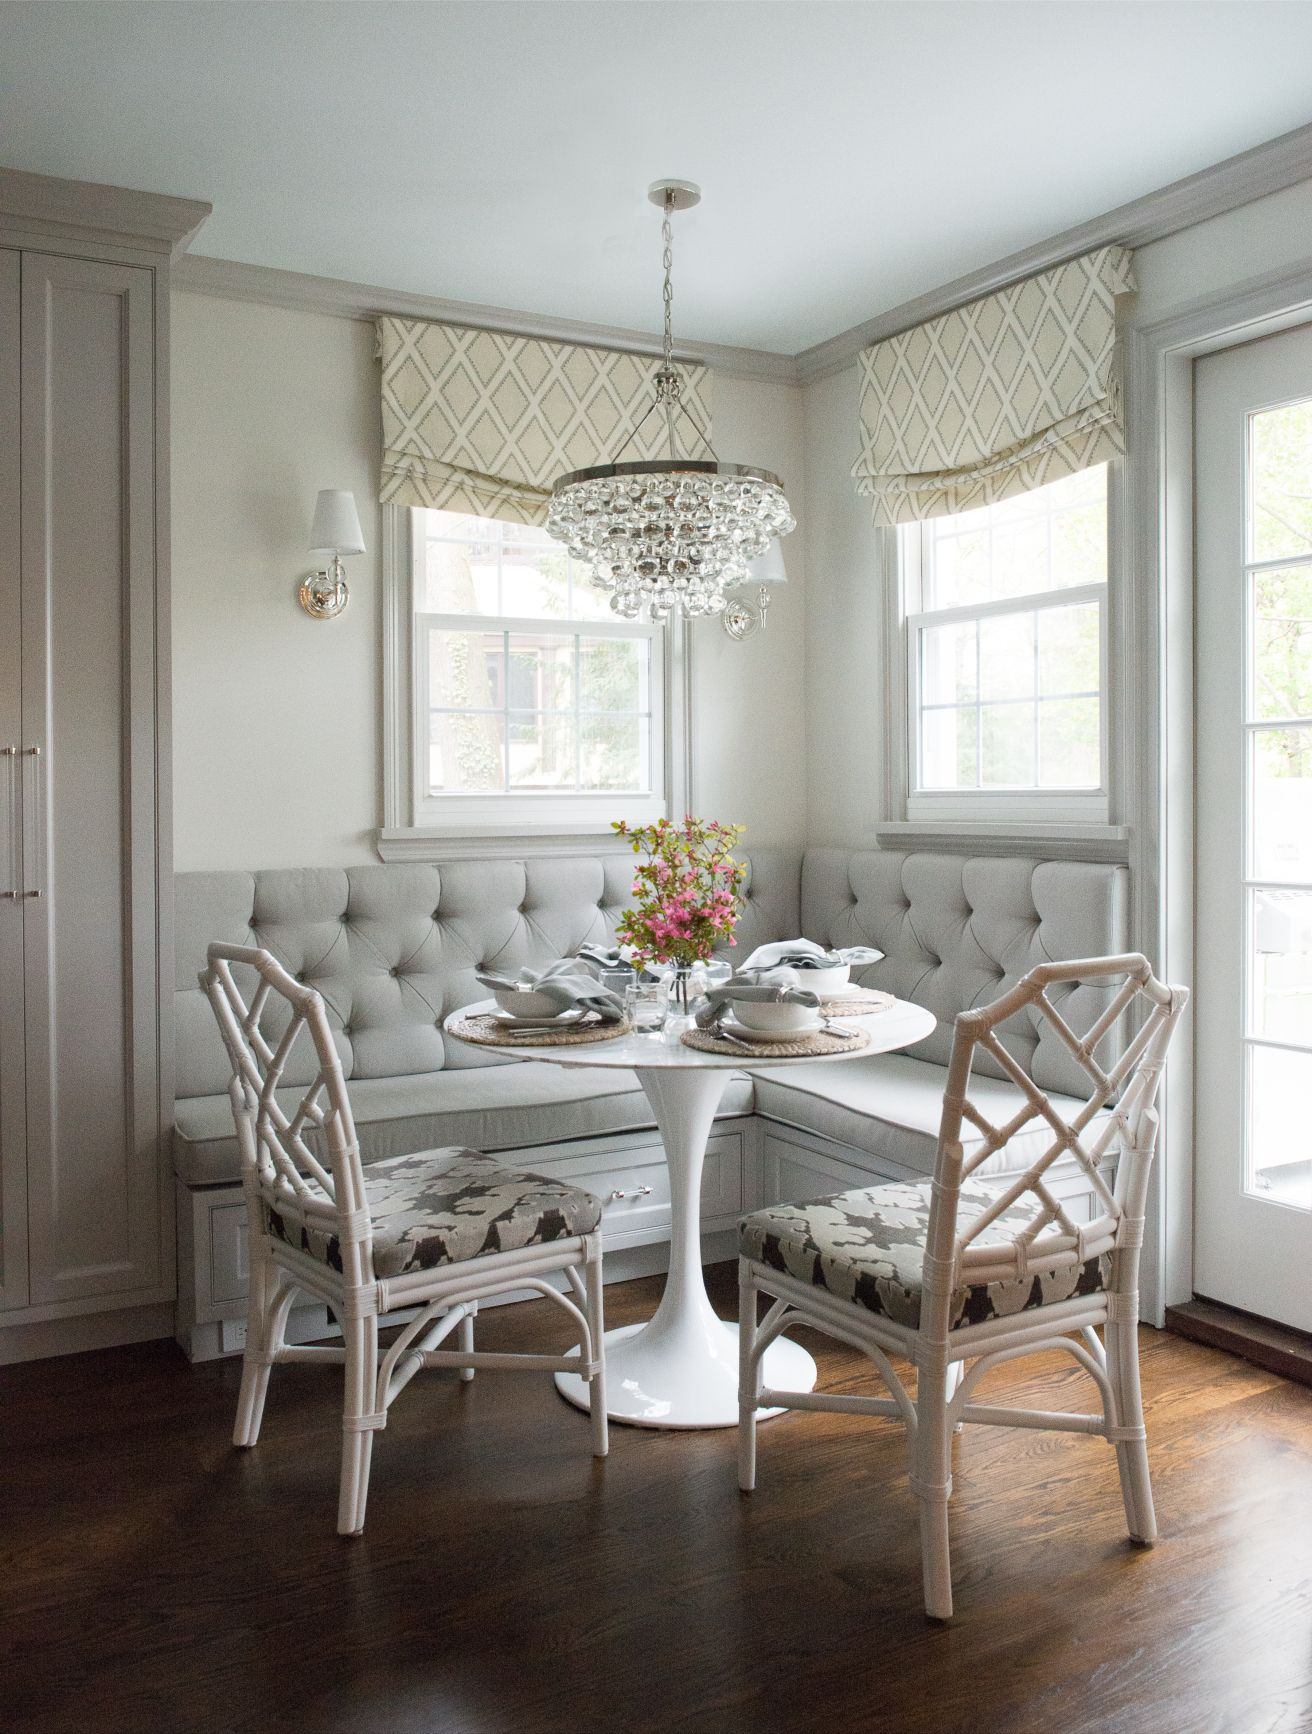 Banquette tulip table chinese chippendale chairs for Mobilia kitchen table